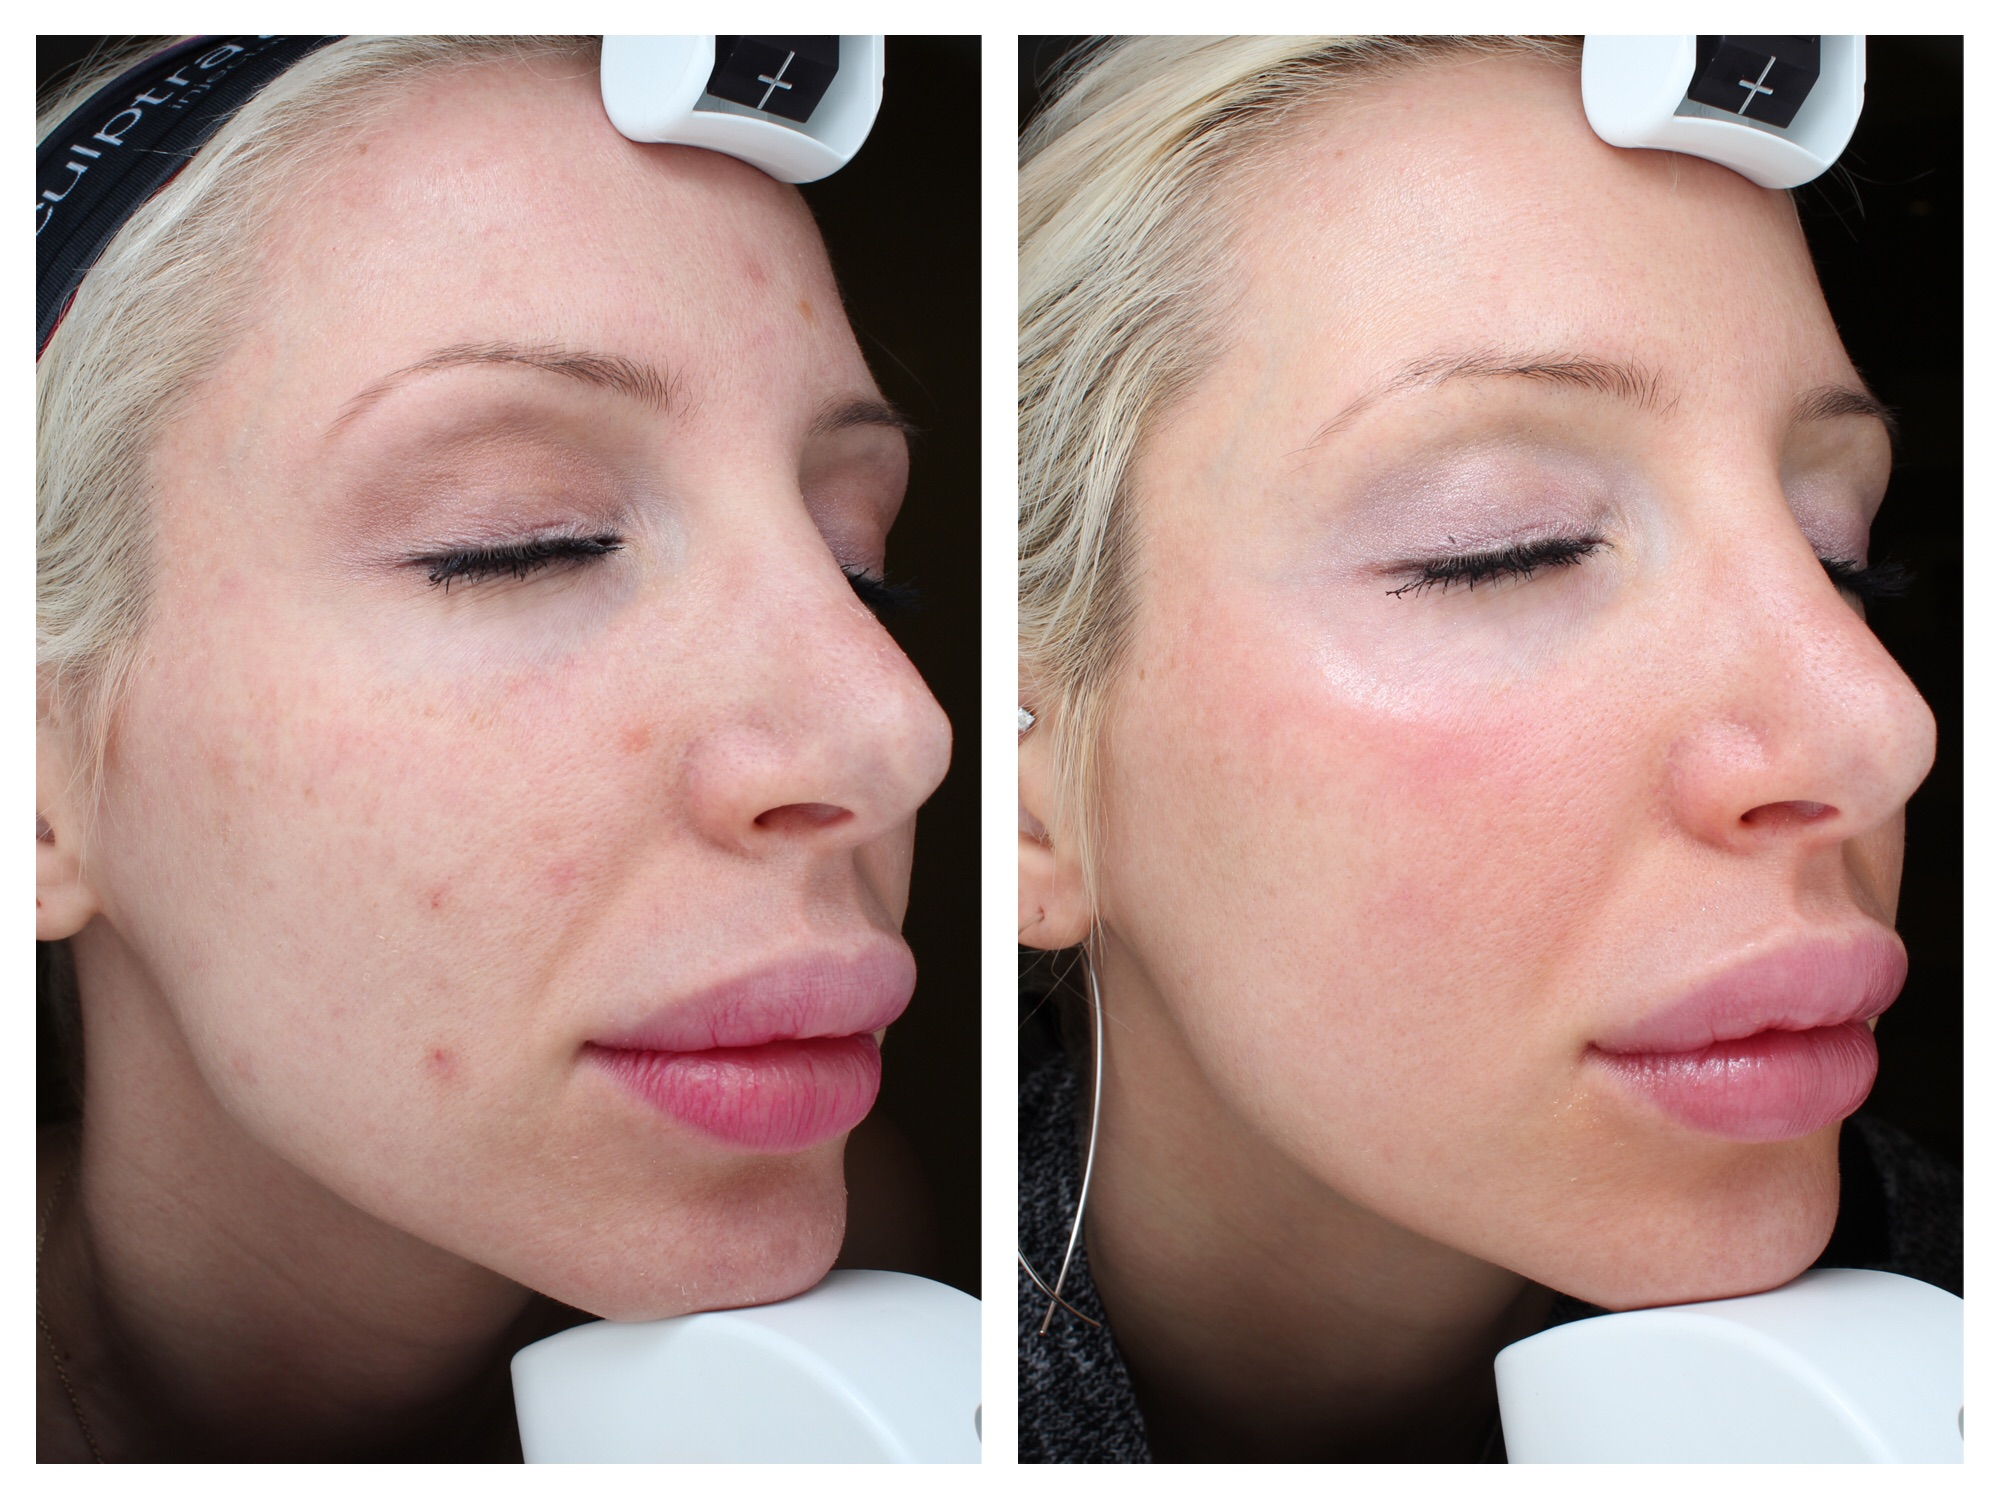 My before and after: 6 months after 2 Halo Laser  Resurfacing Treatments at Erickson Dermatology in Chicago